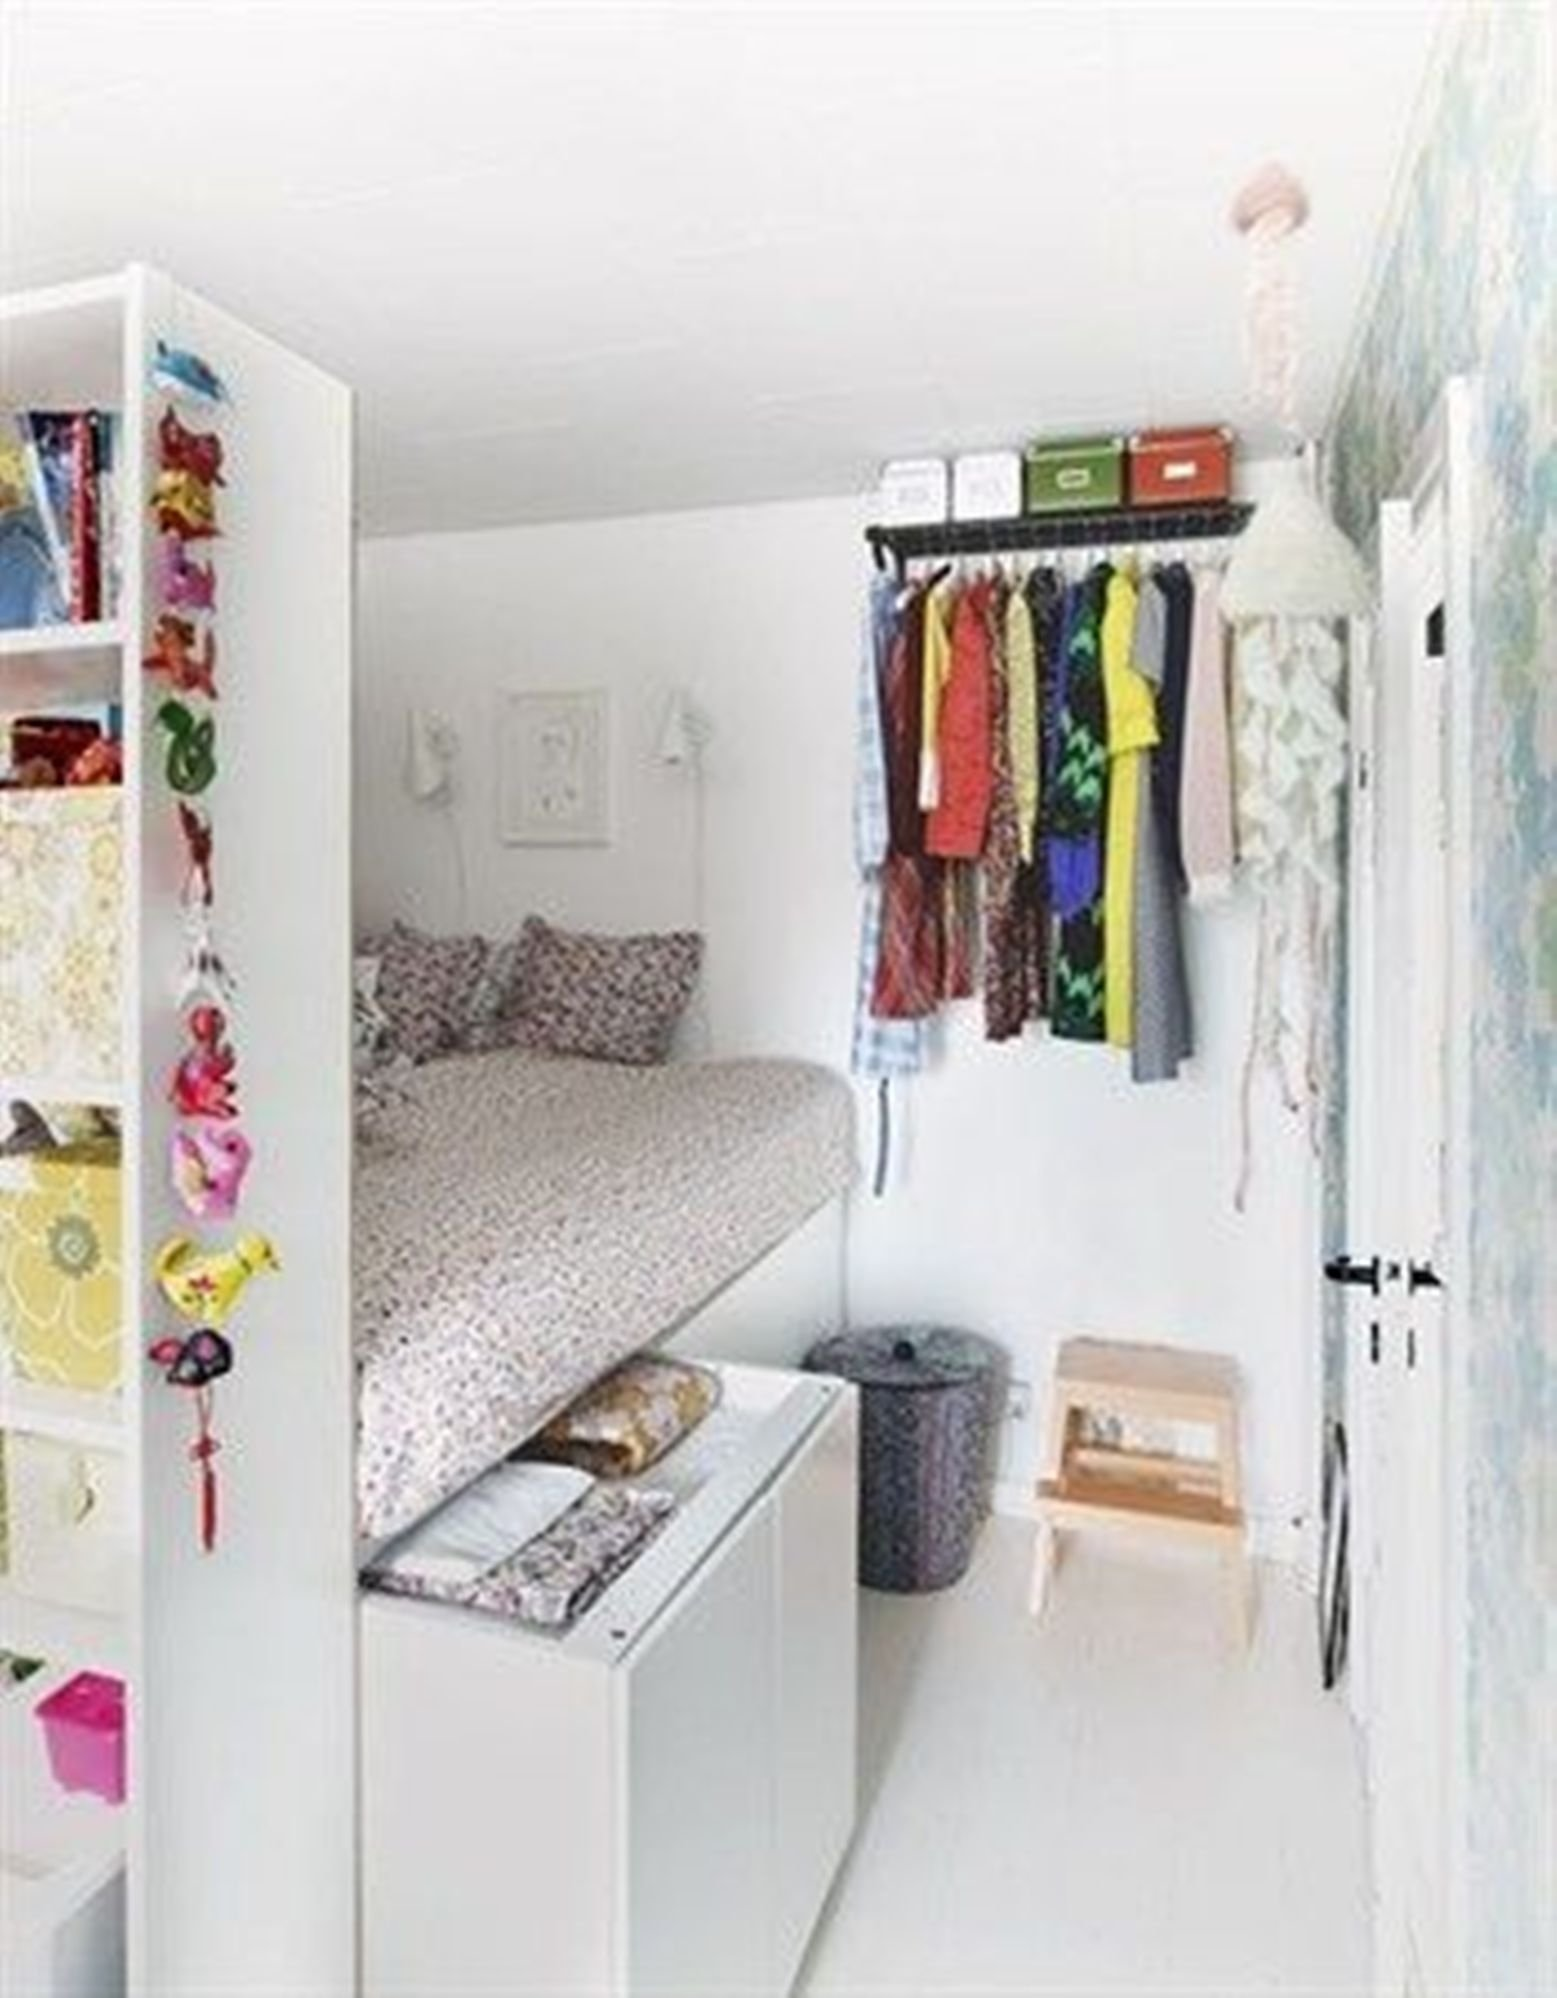 10 Spectacular Organizing Ideas For Small Spaces organizing a small bedroom eas soungwiser excerpt closet ideas for 2021